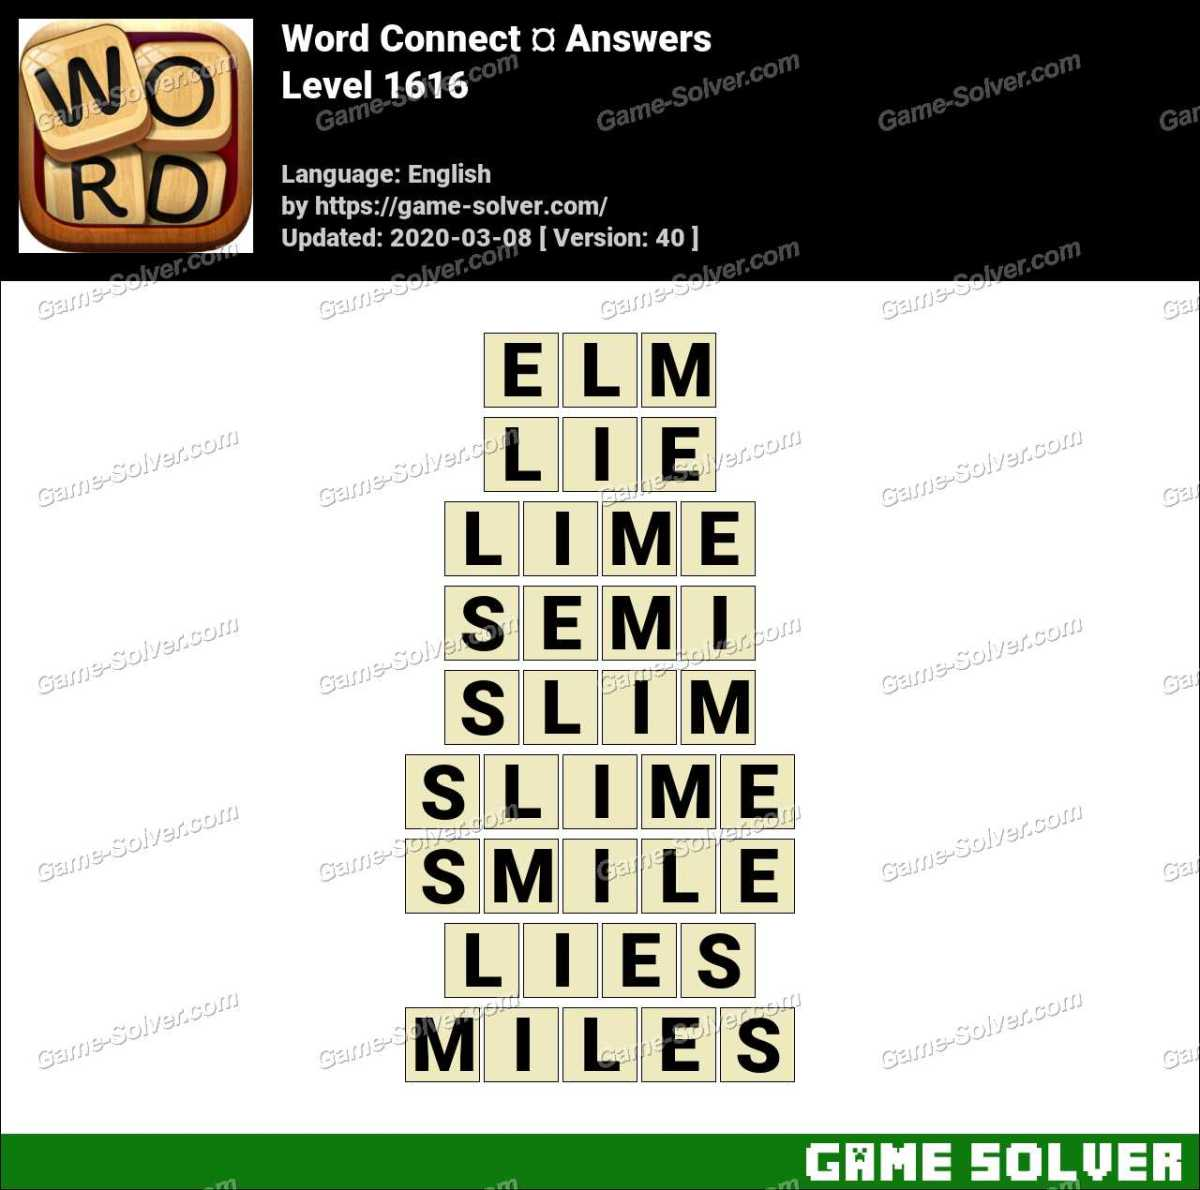 Word Connect Level 1616 Answers